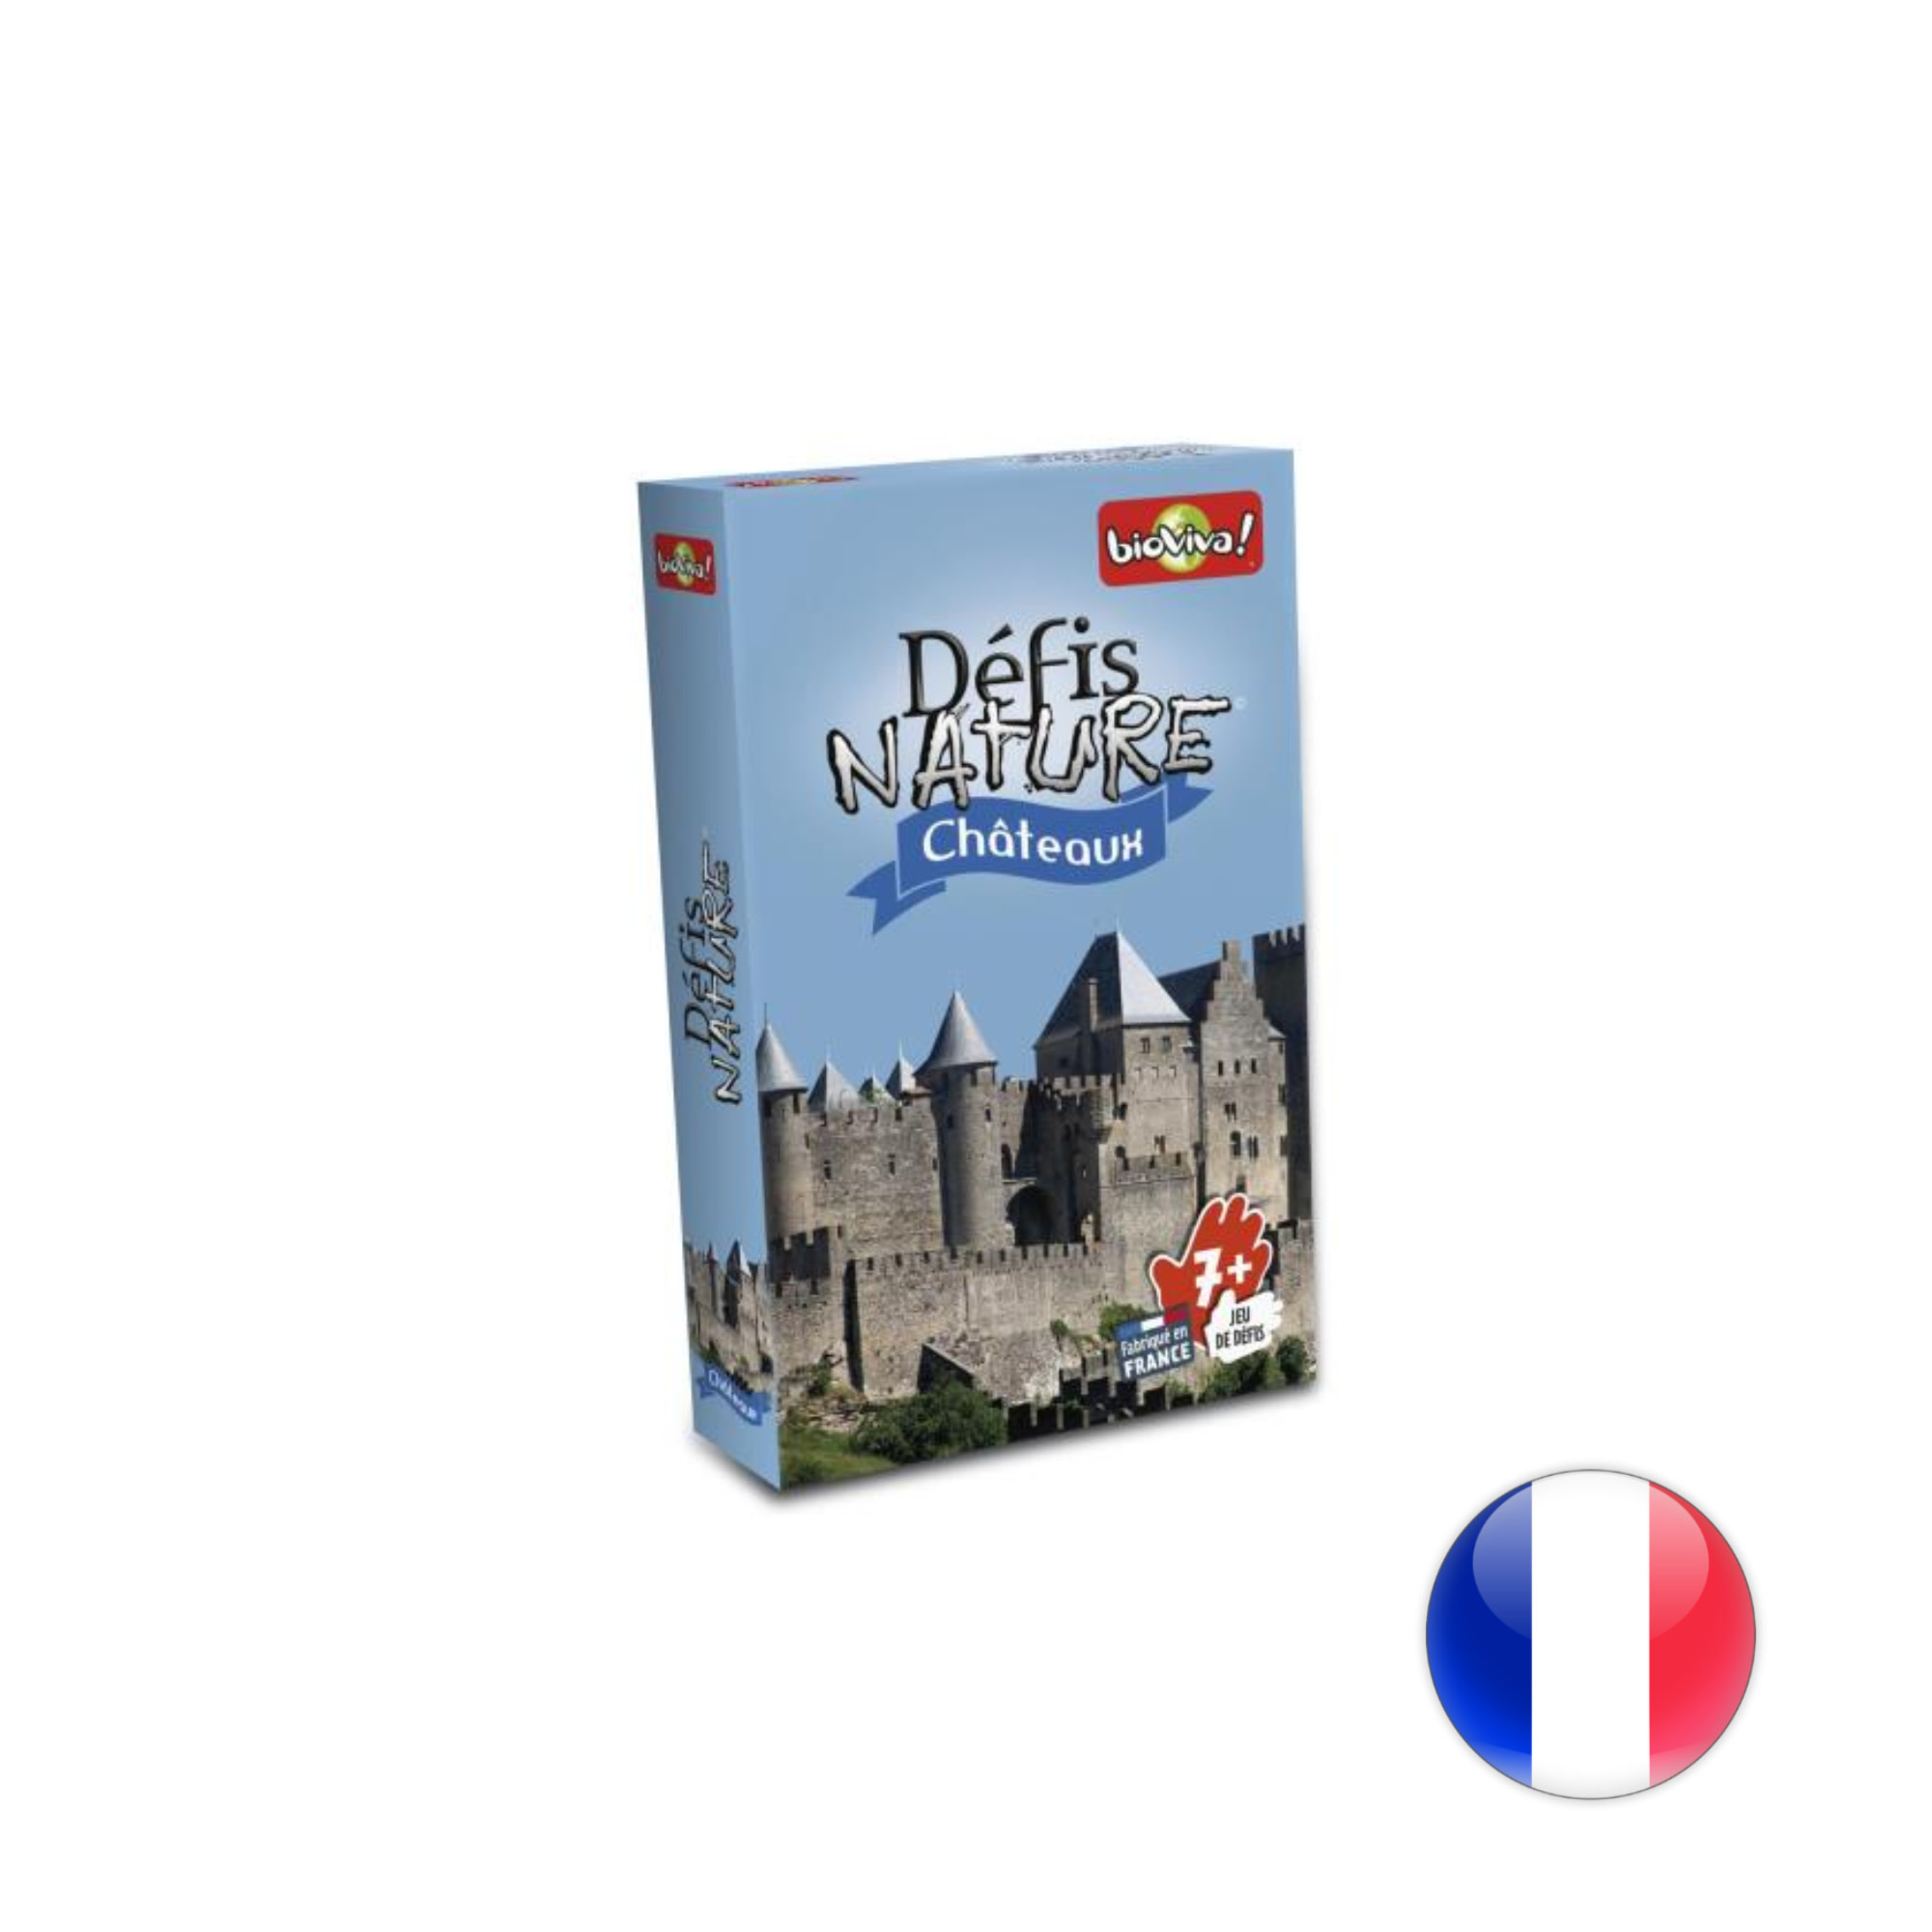 BioViva Defis Natures Chateaux